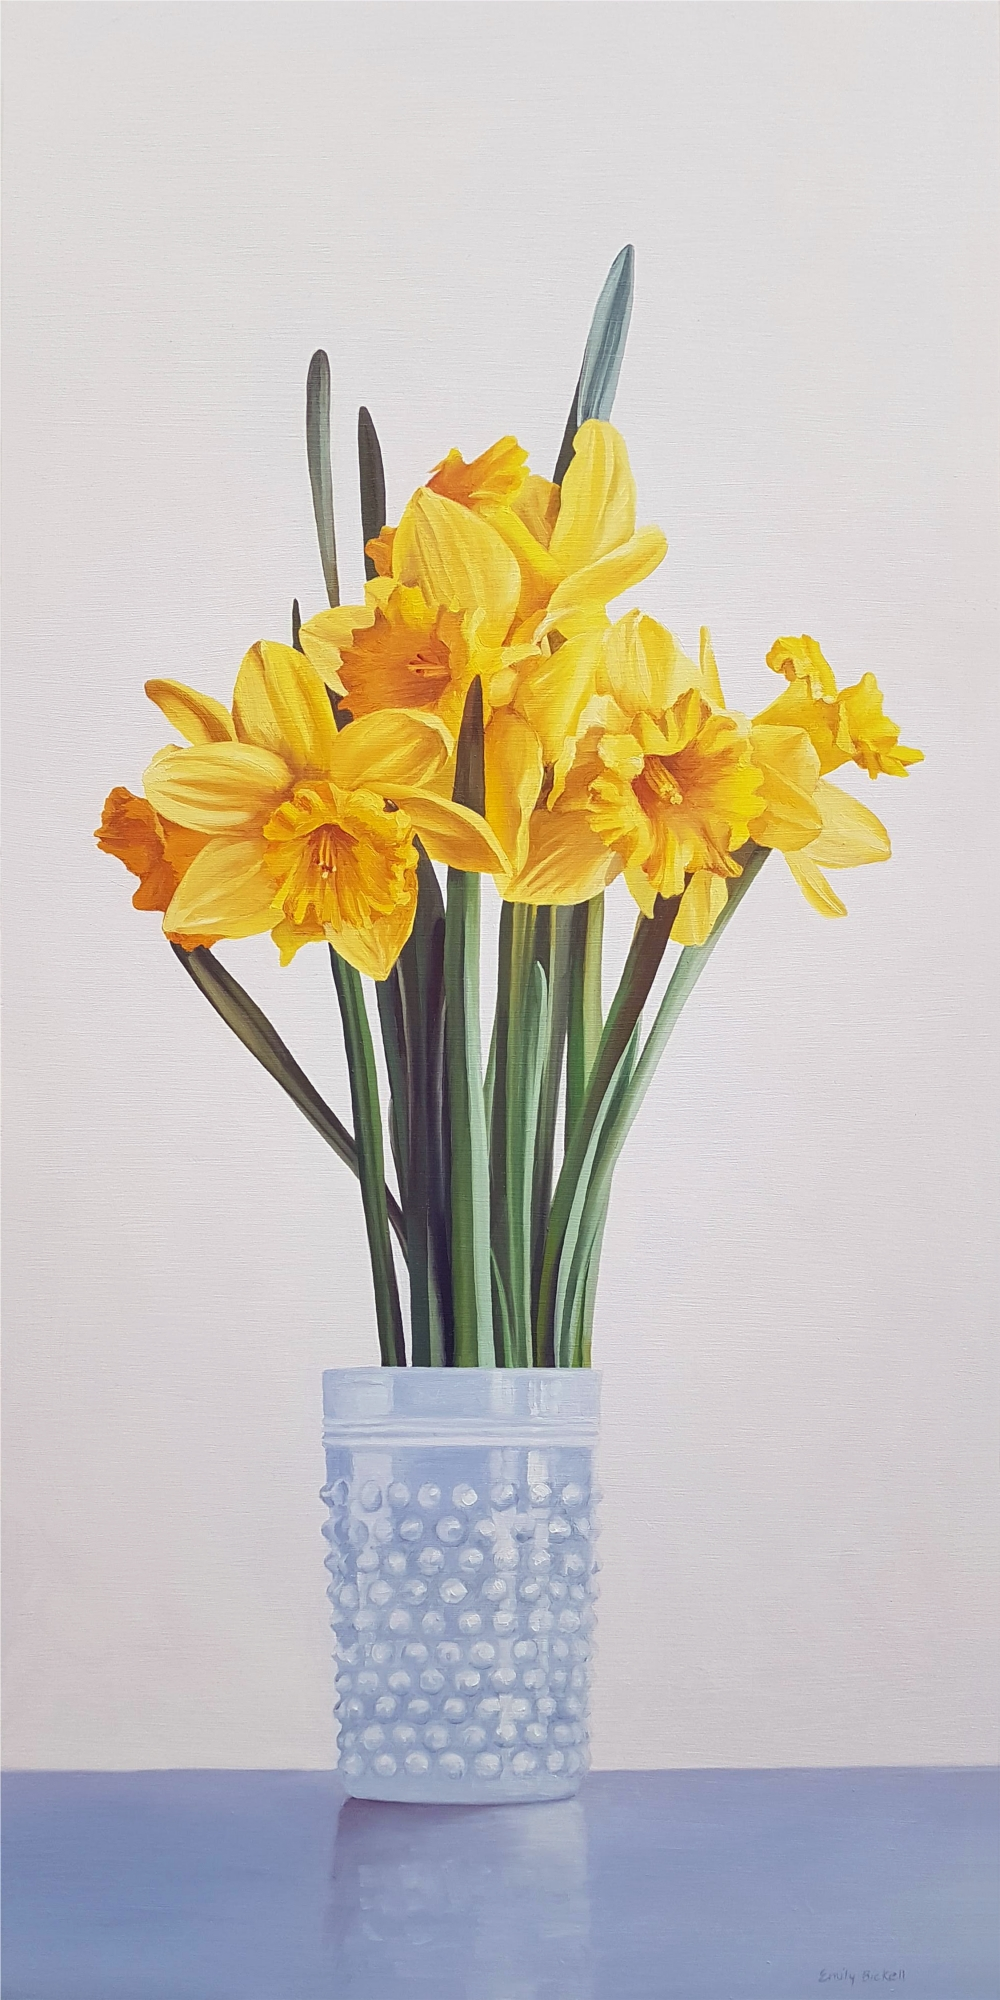 Daffodils by Emily Bickell